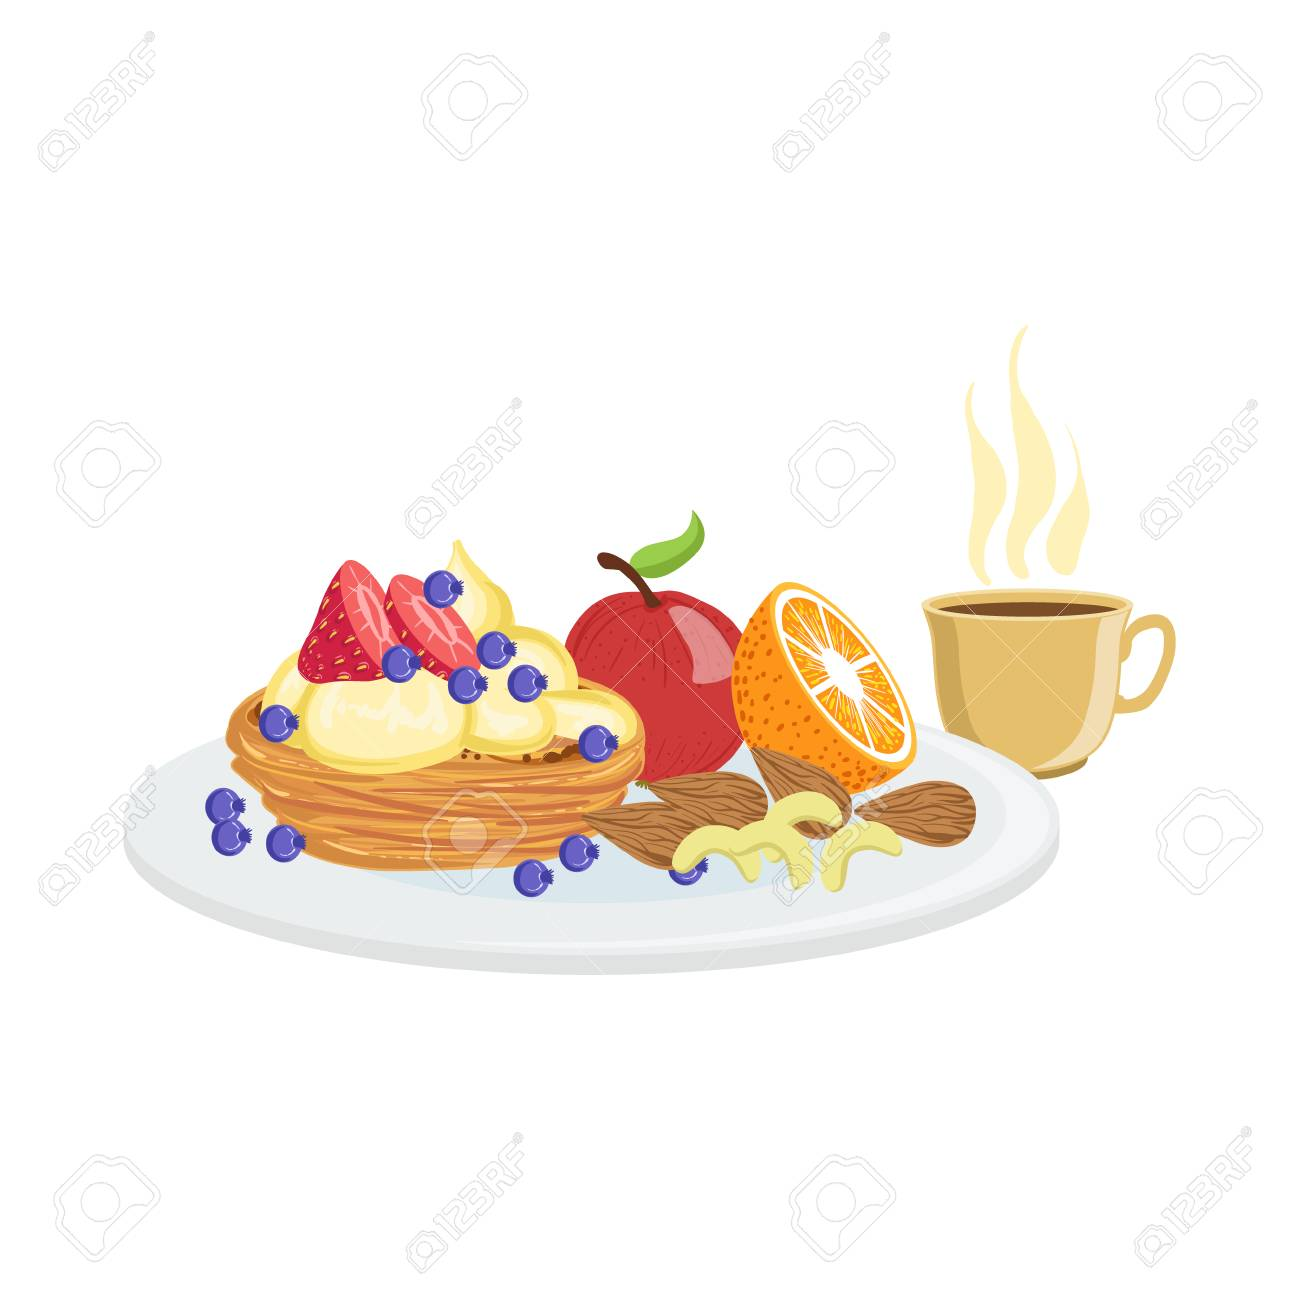 Cake Fruit And Coffee Breakfast Food And Drink Set Morning Royalty Free Cliparts Vectors And Stock Illustration Image 64035332